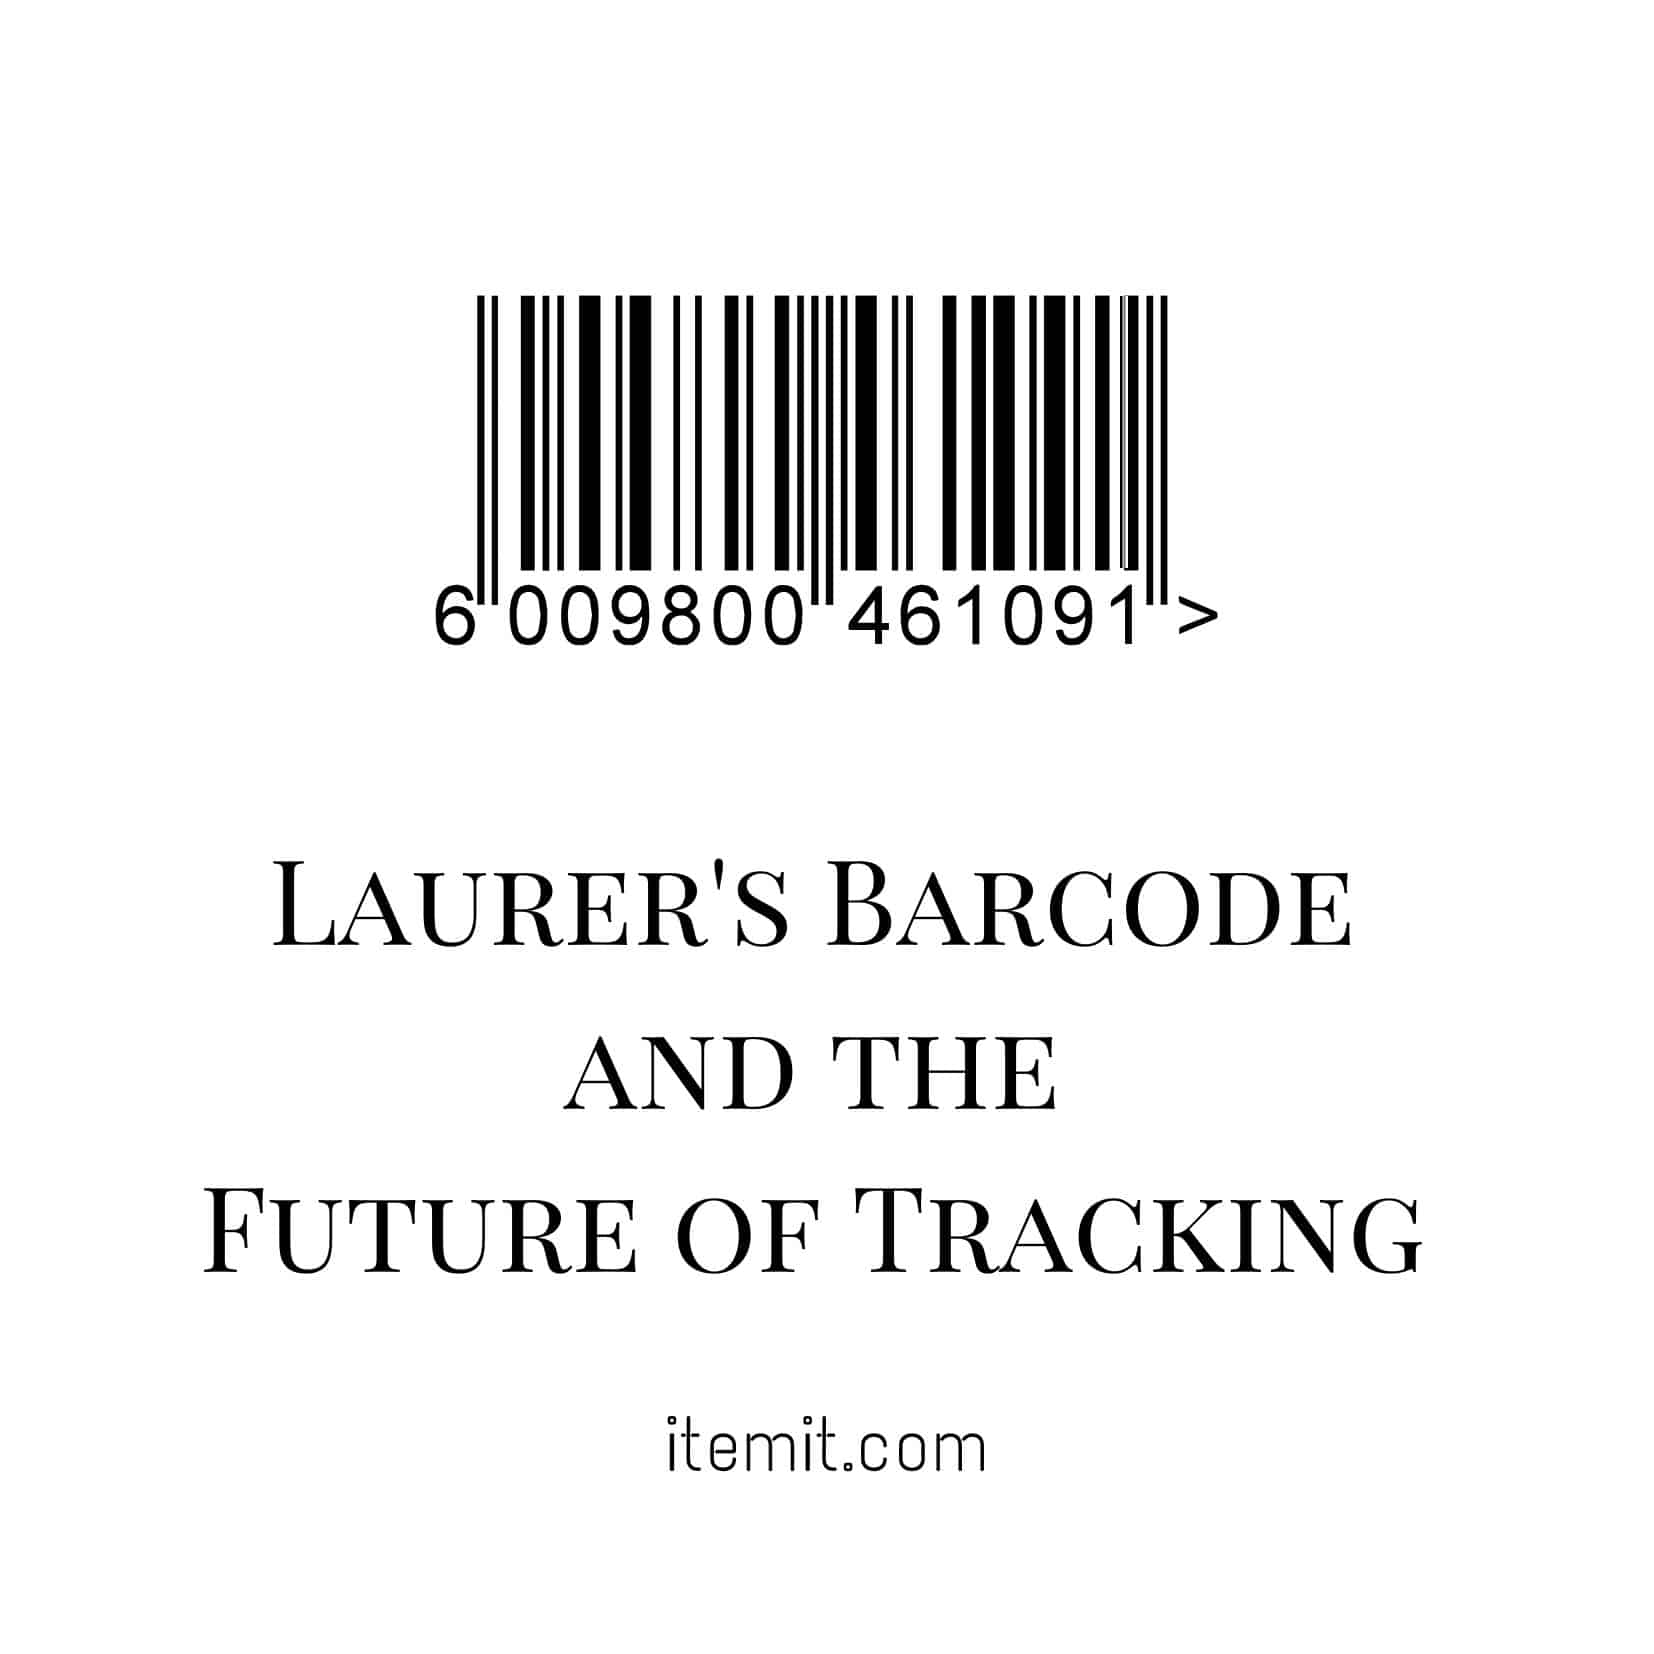 barcodes and asset tracking software